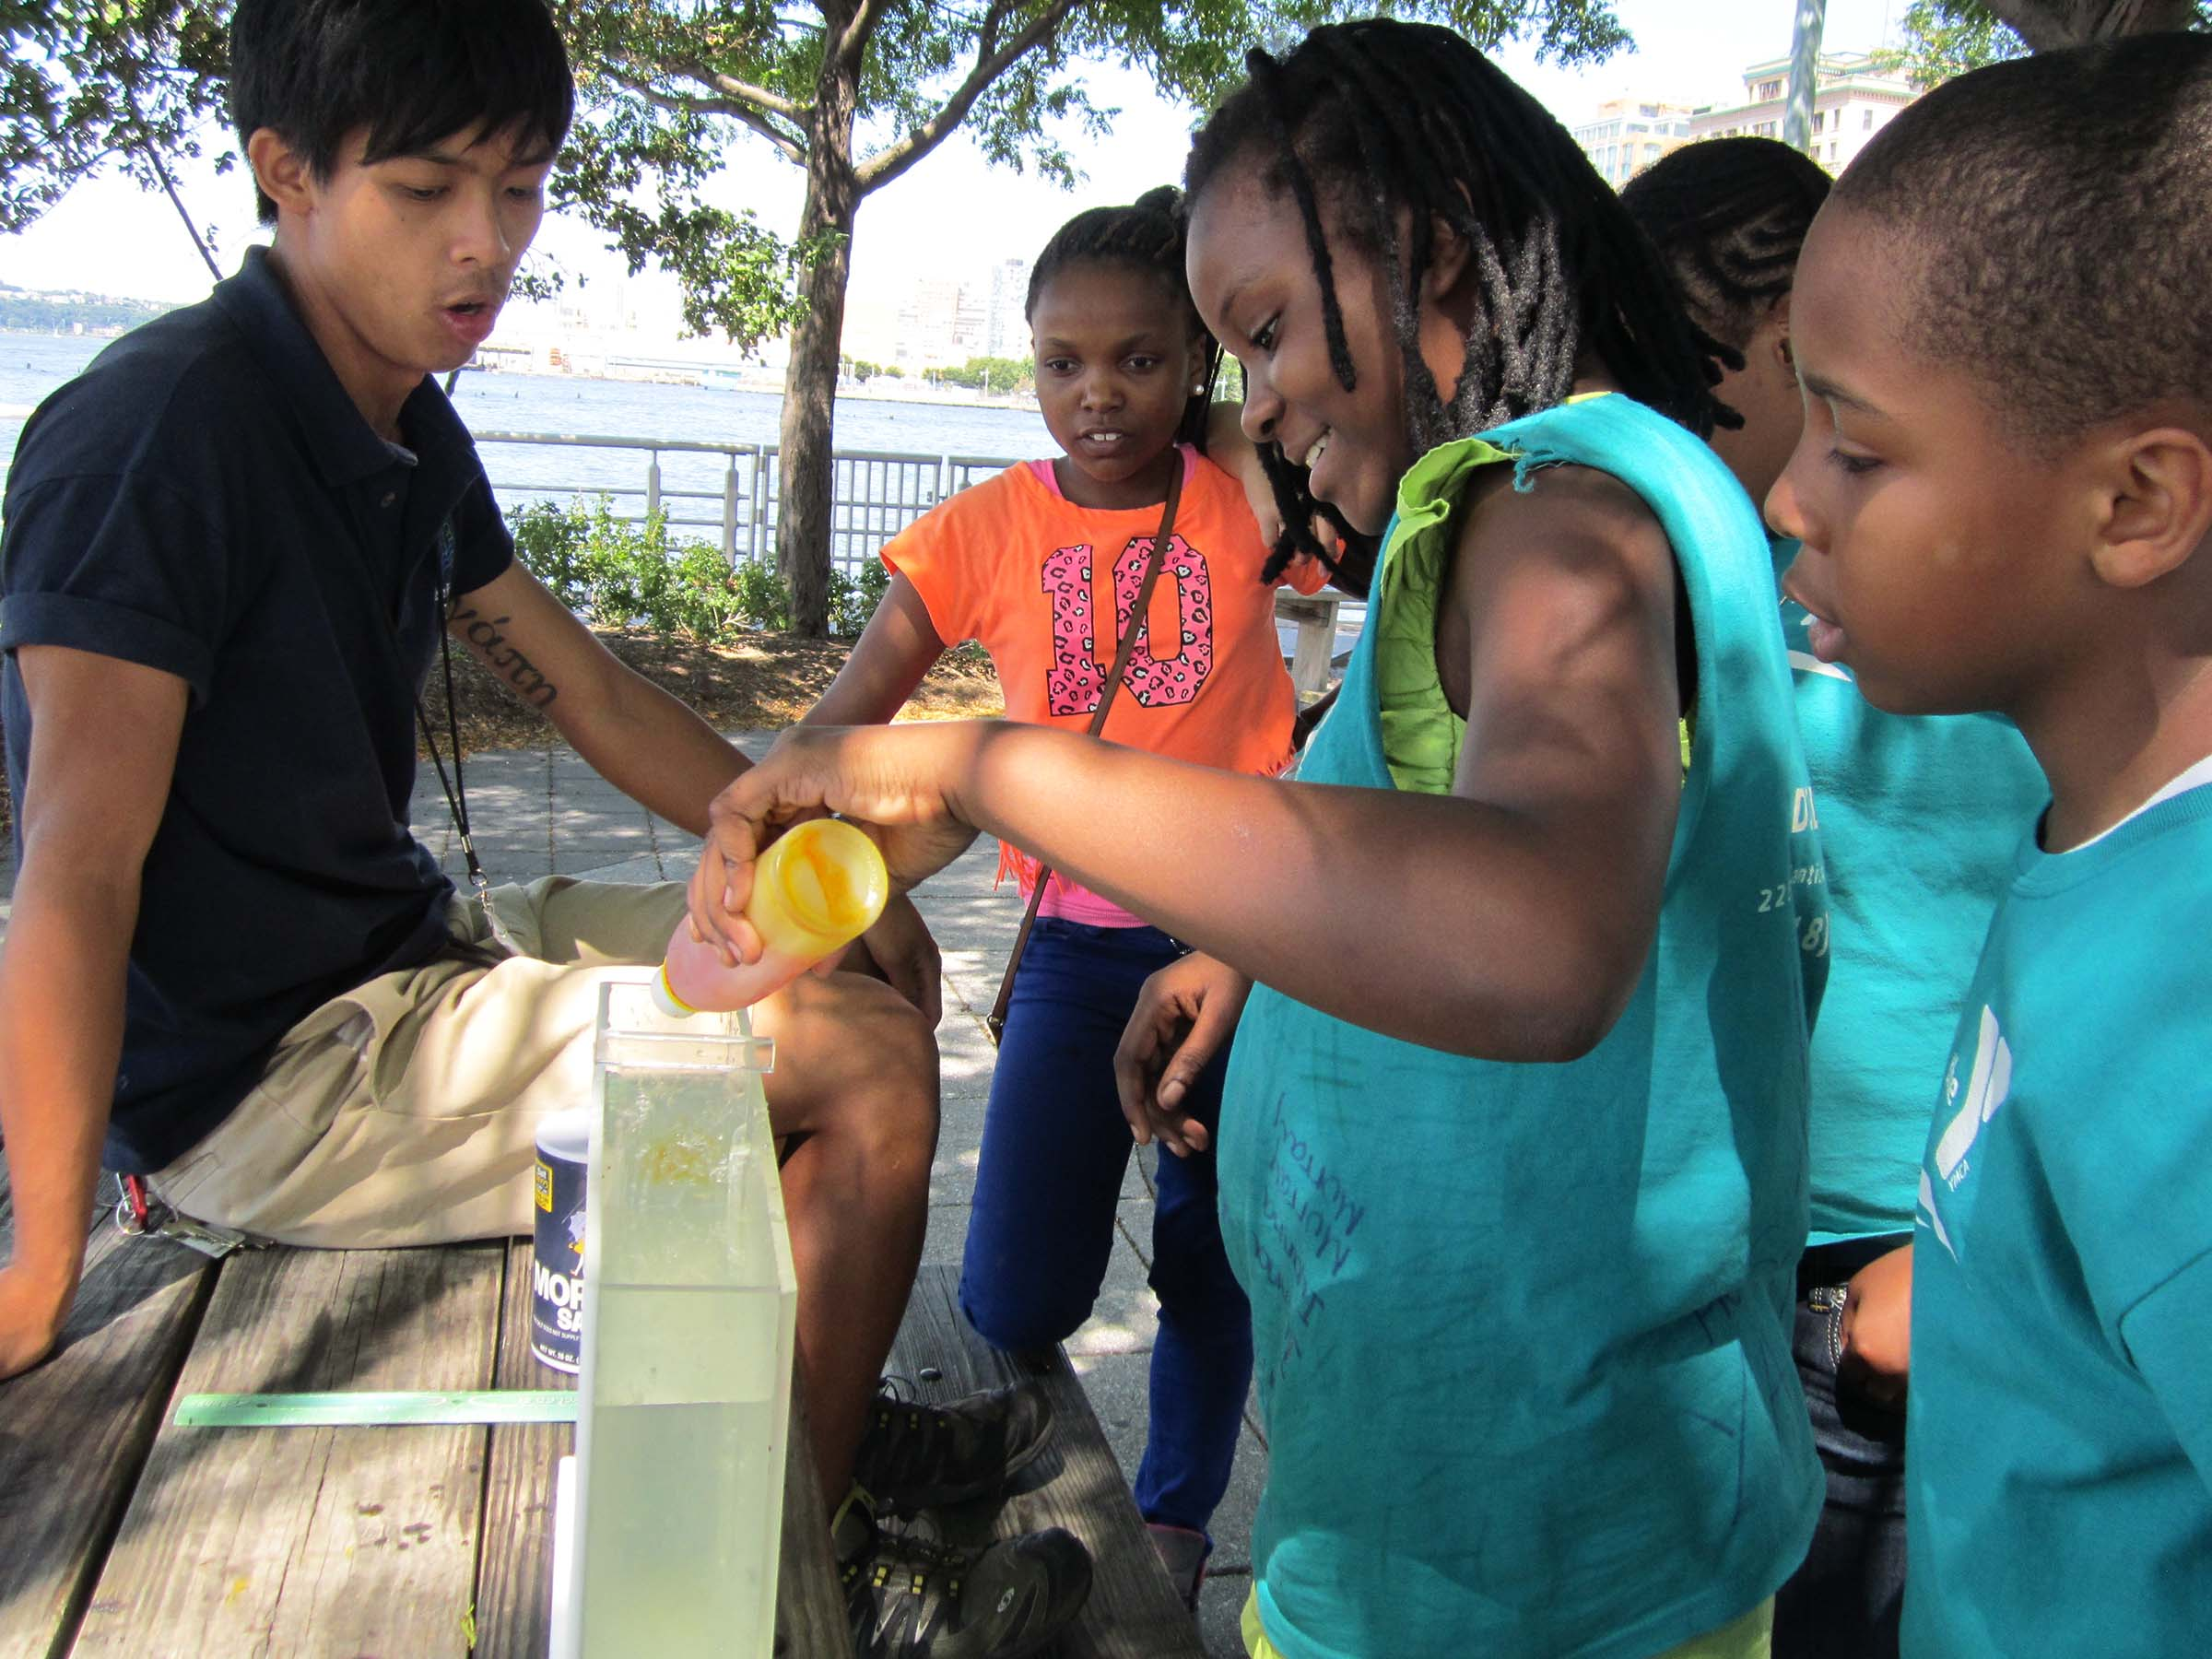 Kids learning about water density and fish biology